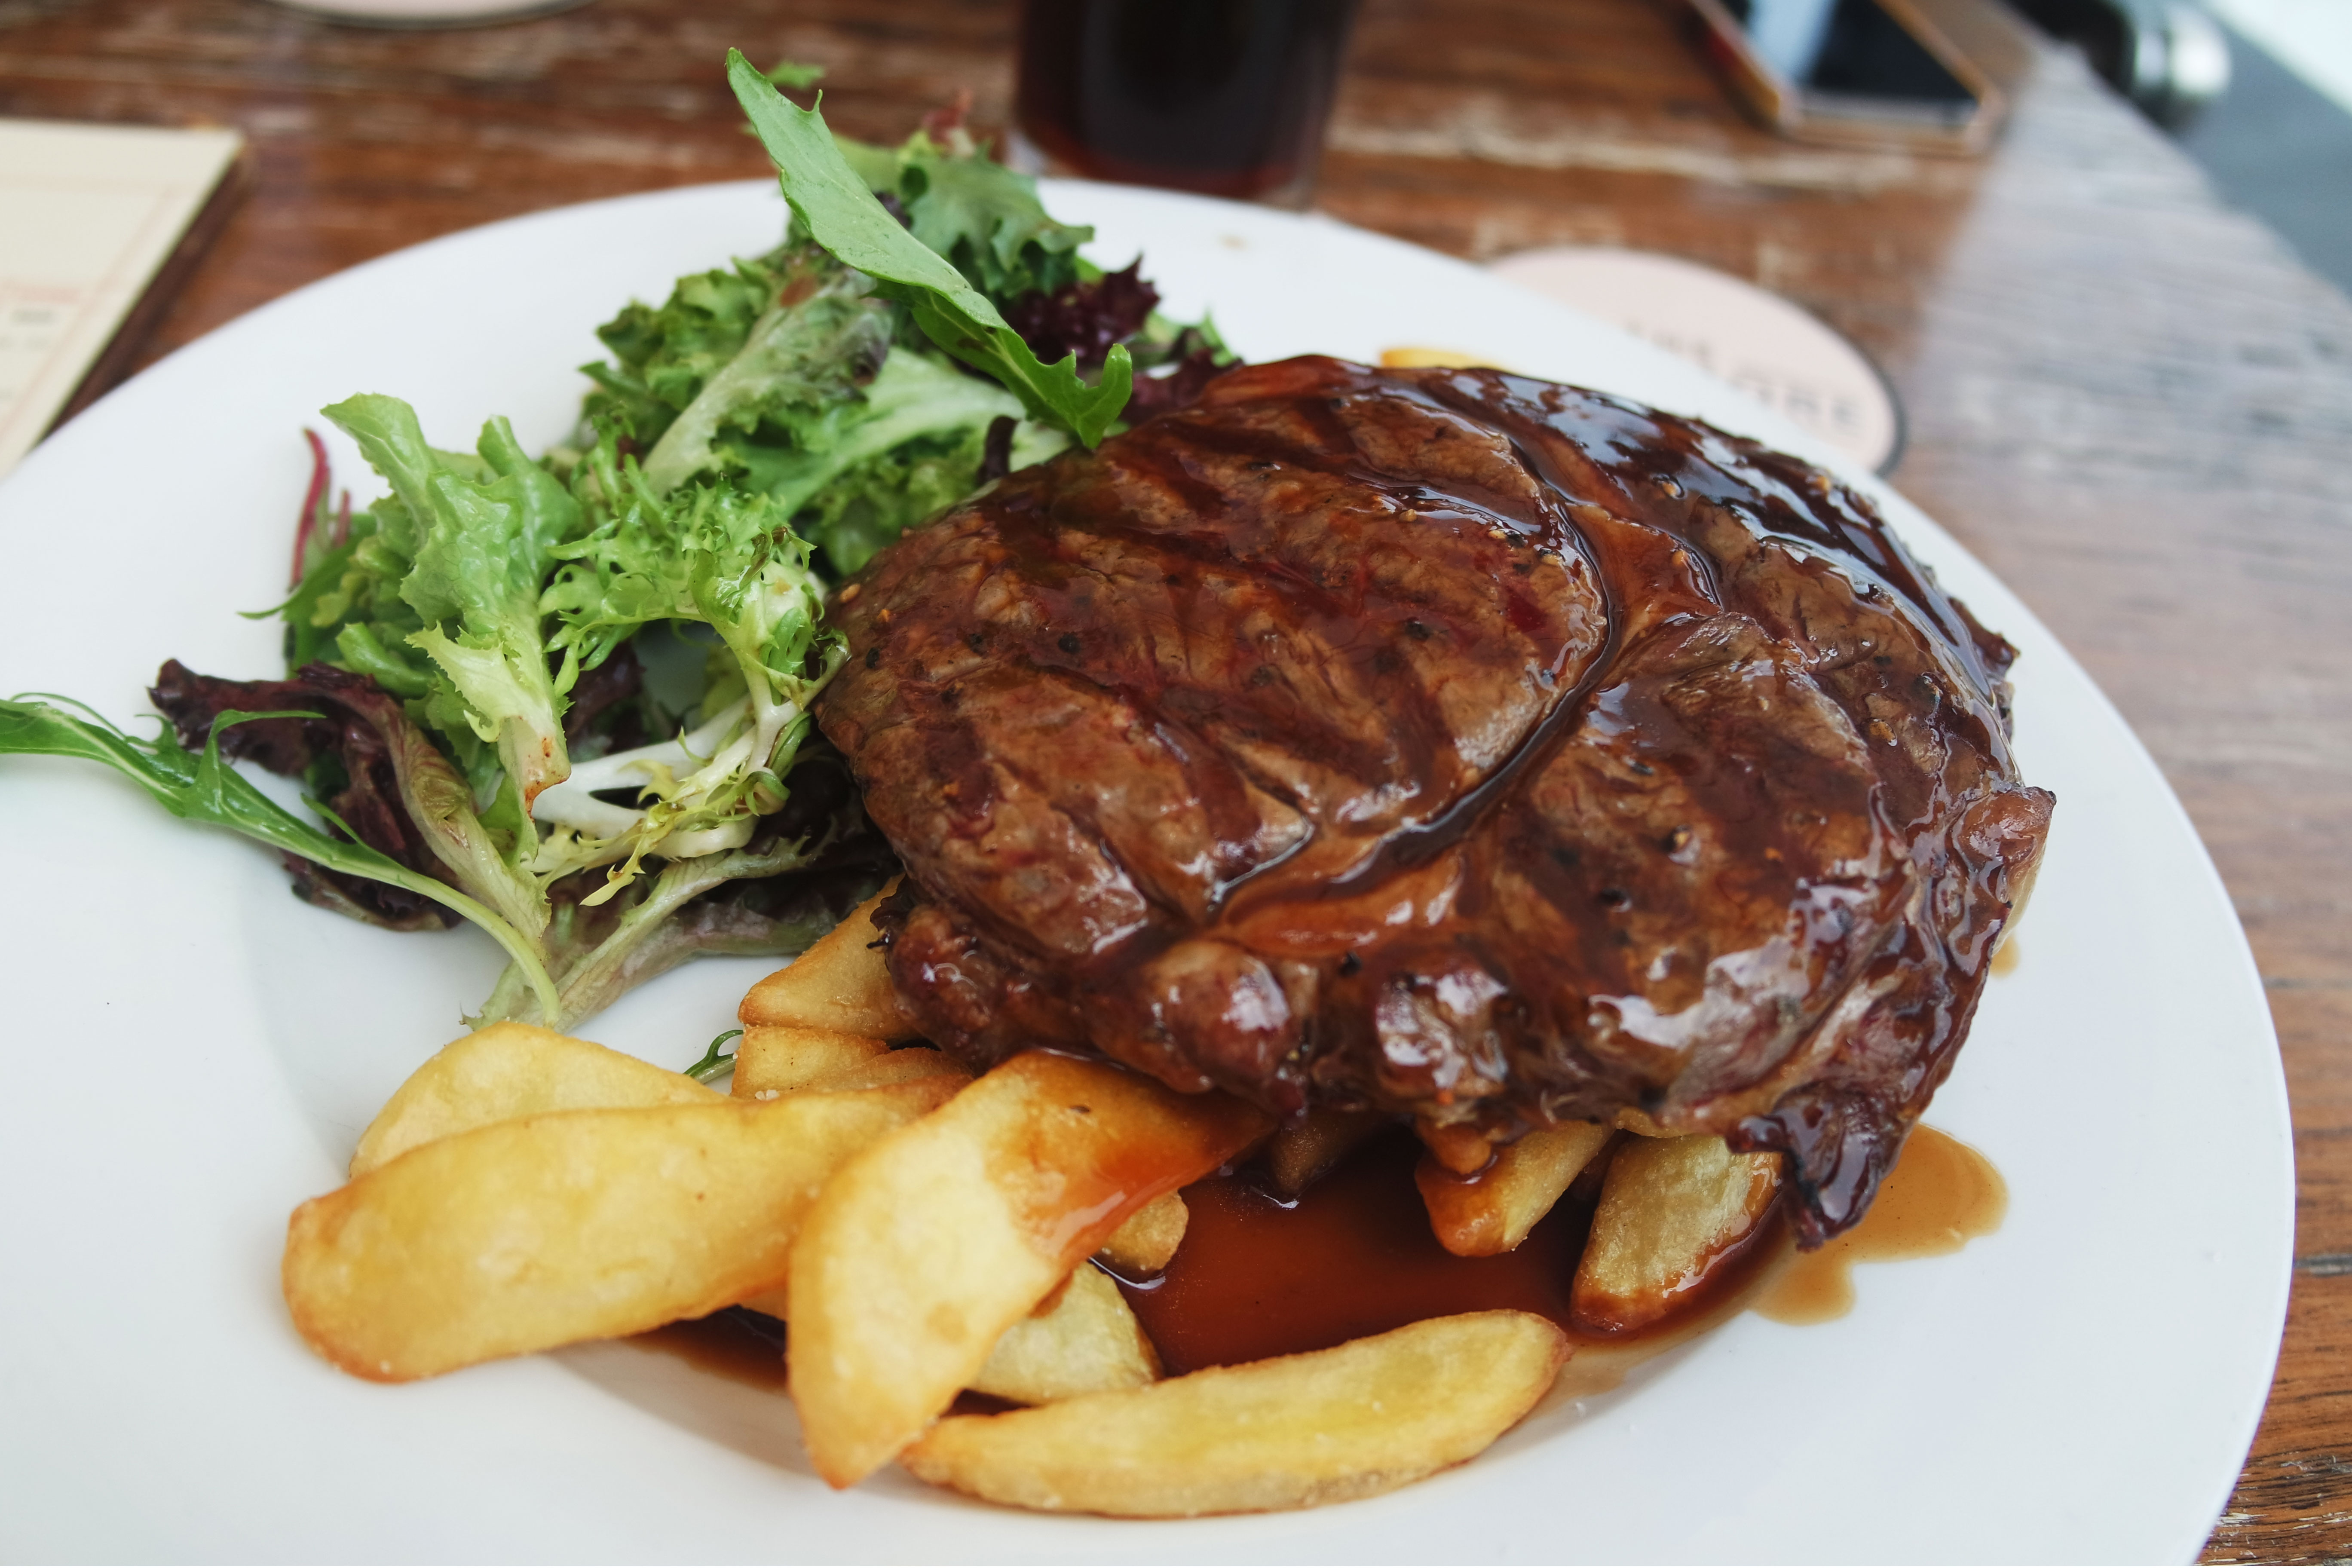 steak-12-$-sydney-mondays-glenmoore-hotel-bon-plan-1m